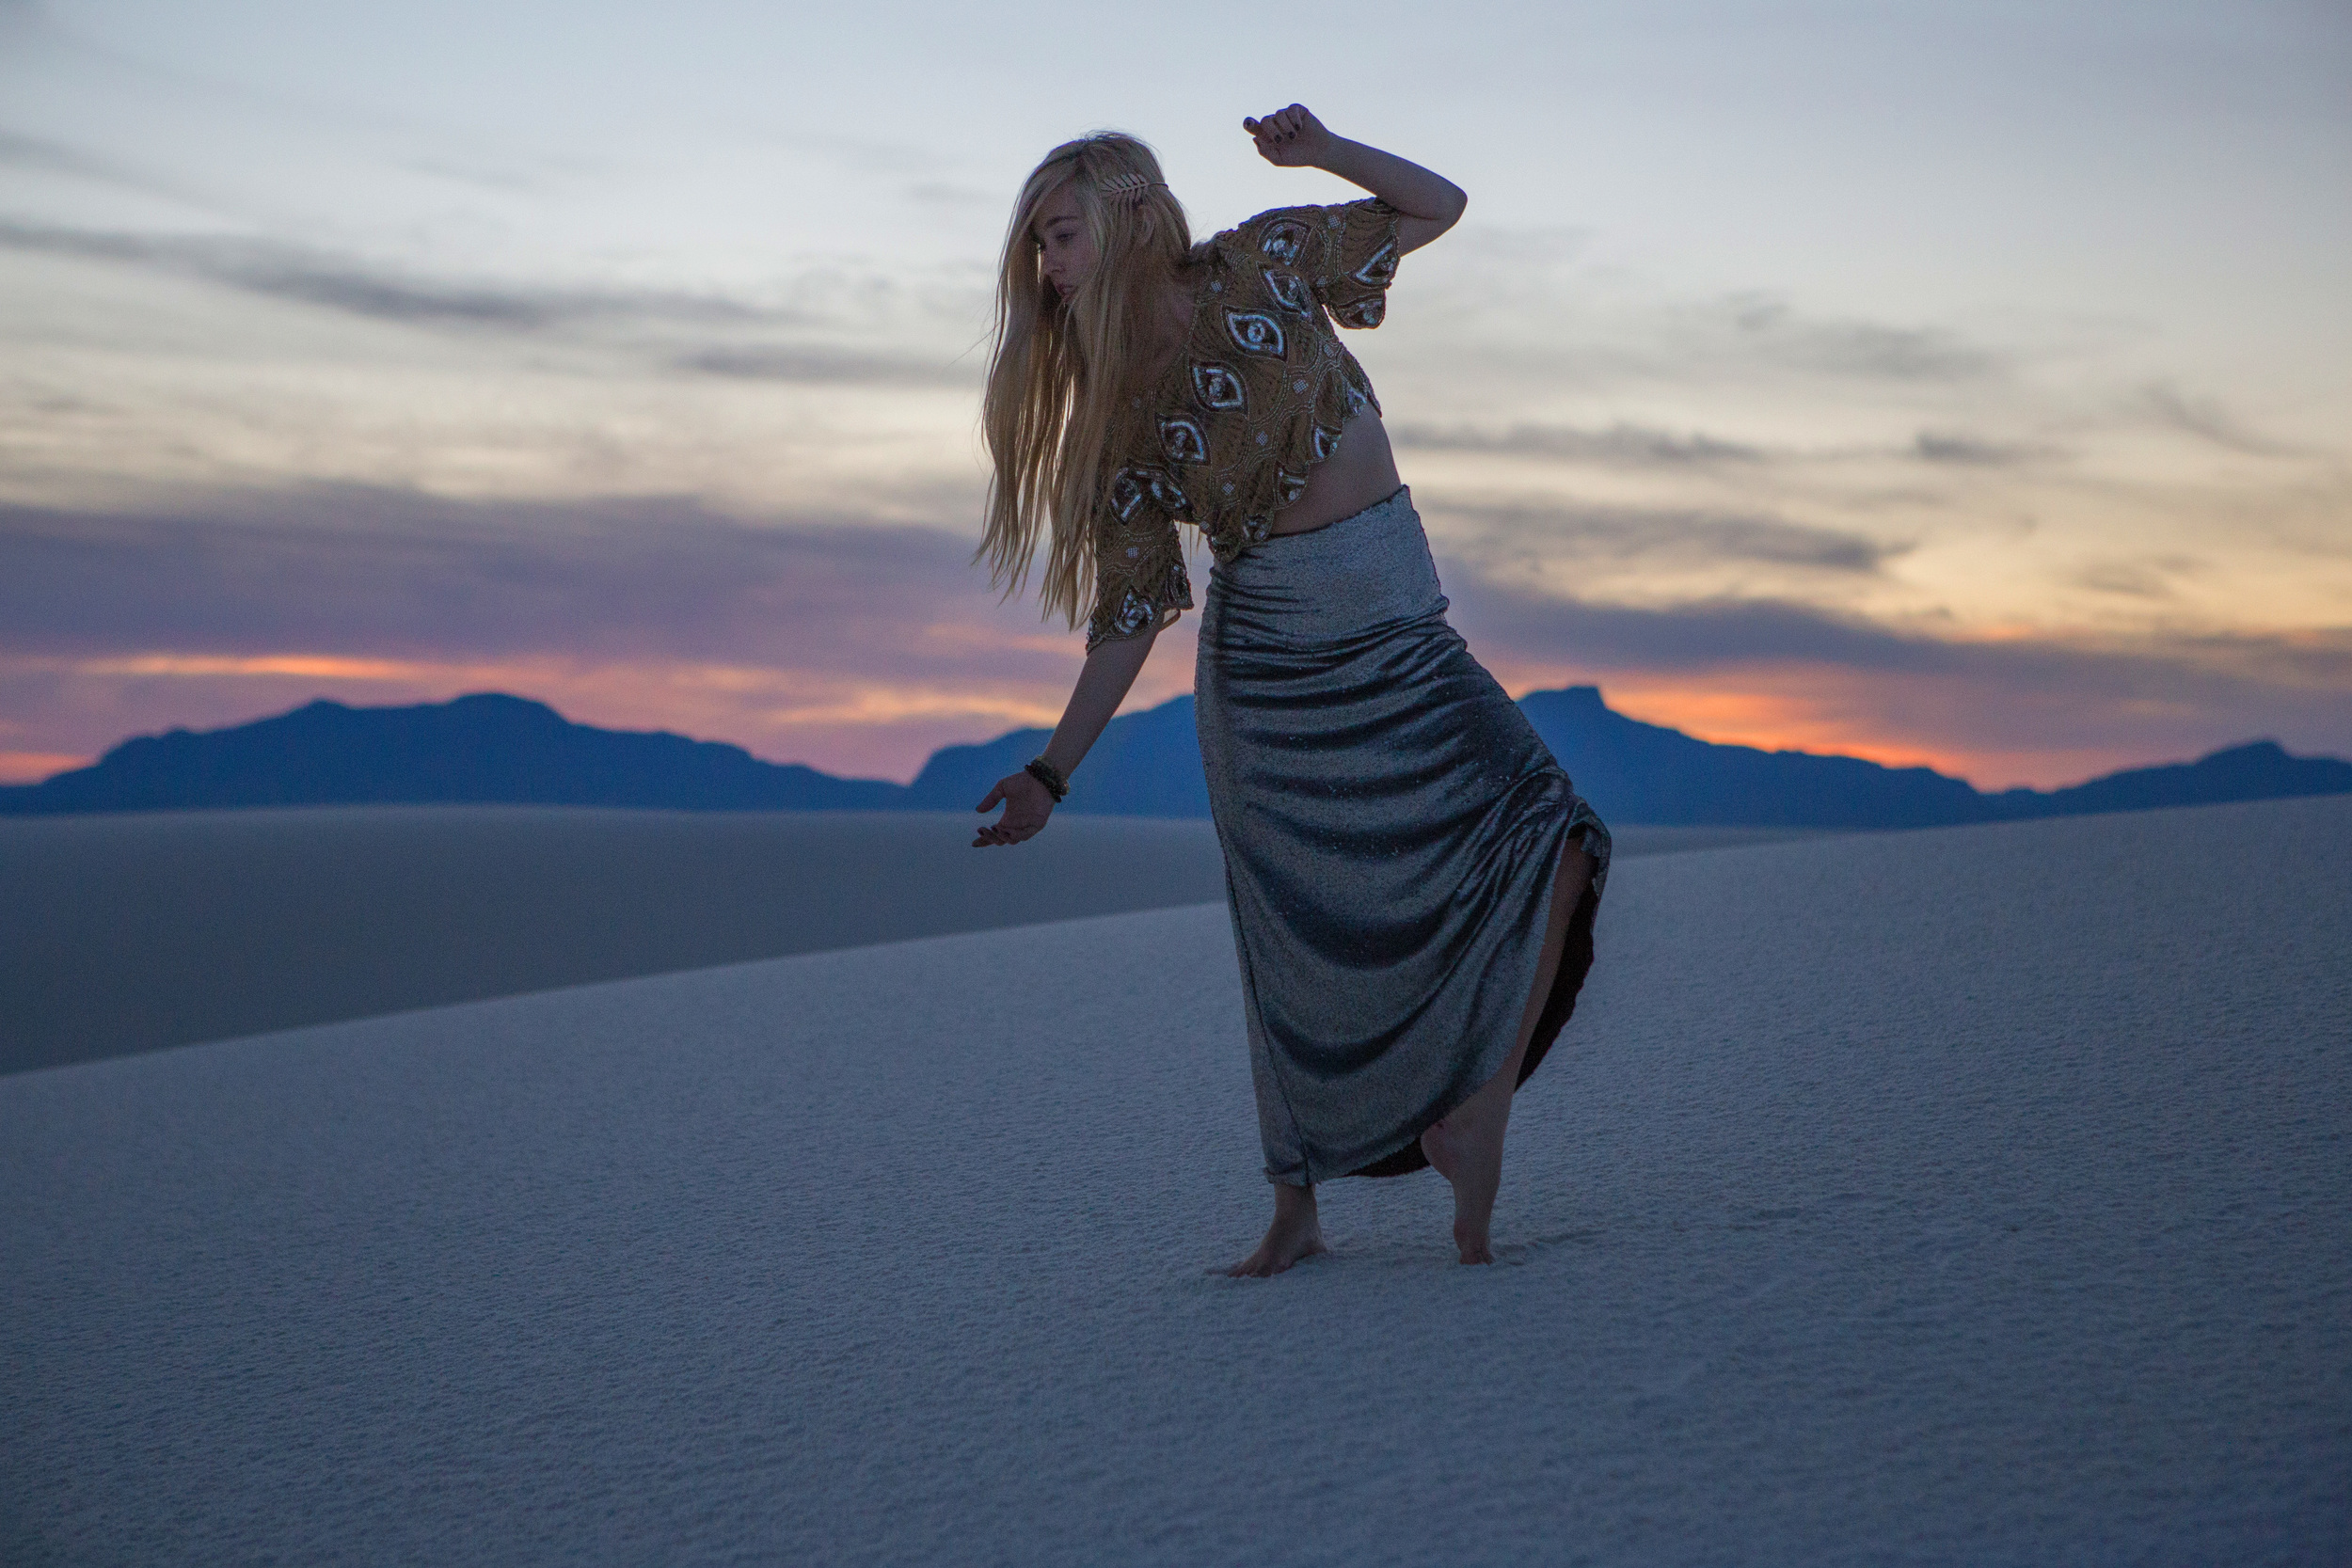 AstroBandit_JordanRose_WhiteSands_Sunset_Sequins_Dancing_Dancer_Fashion_7.jpg